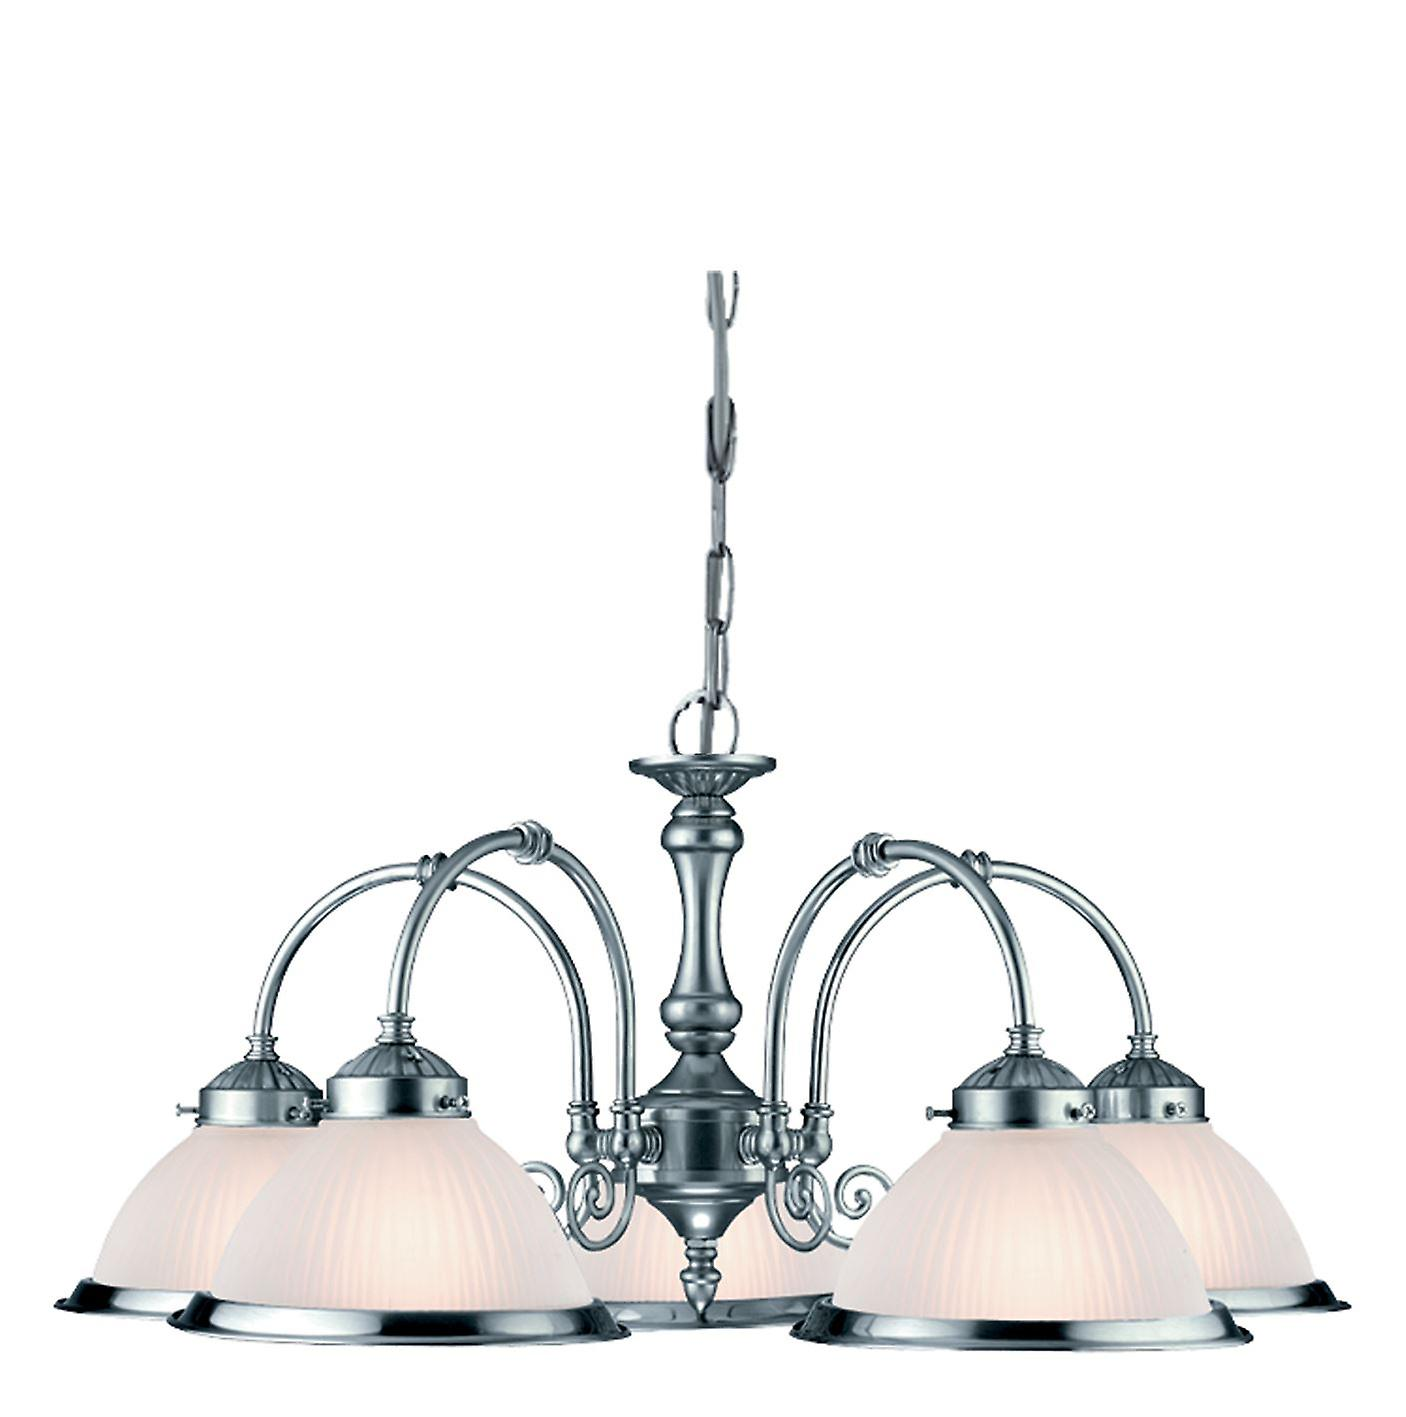 American Diner Satin argent Five Light Pendant With Acid Ribbed Glass - Searchlight 1045-5